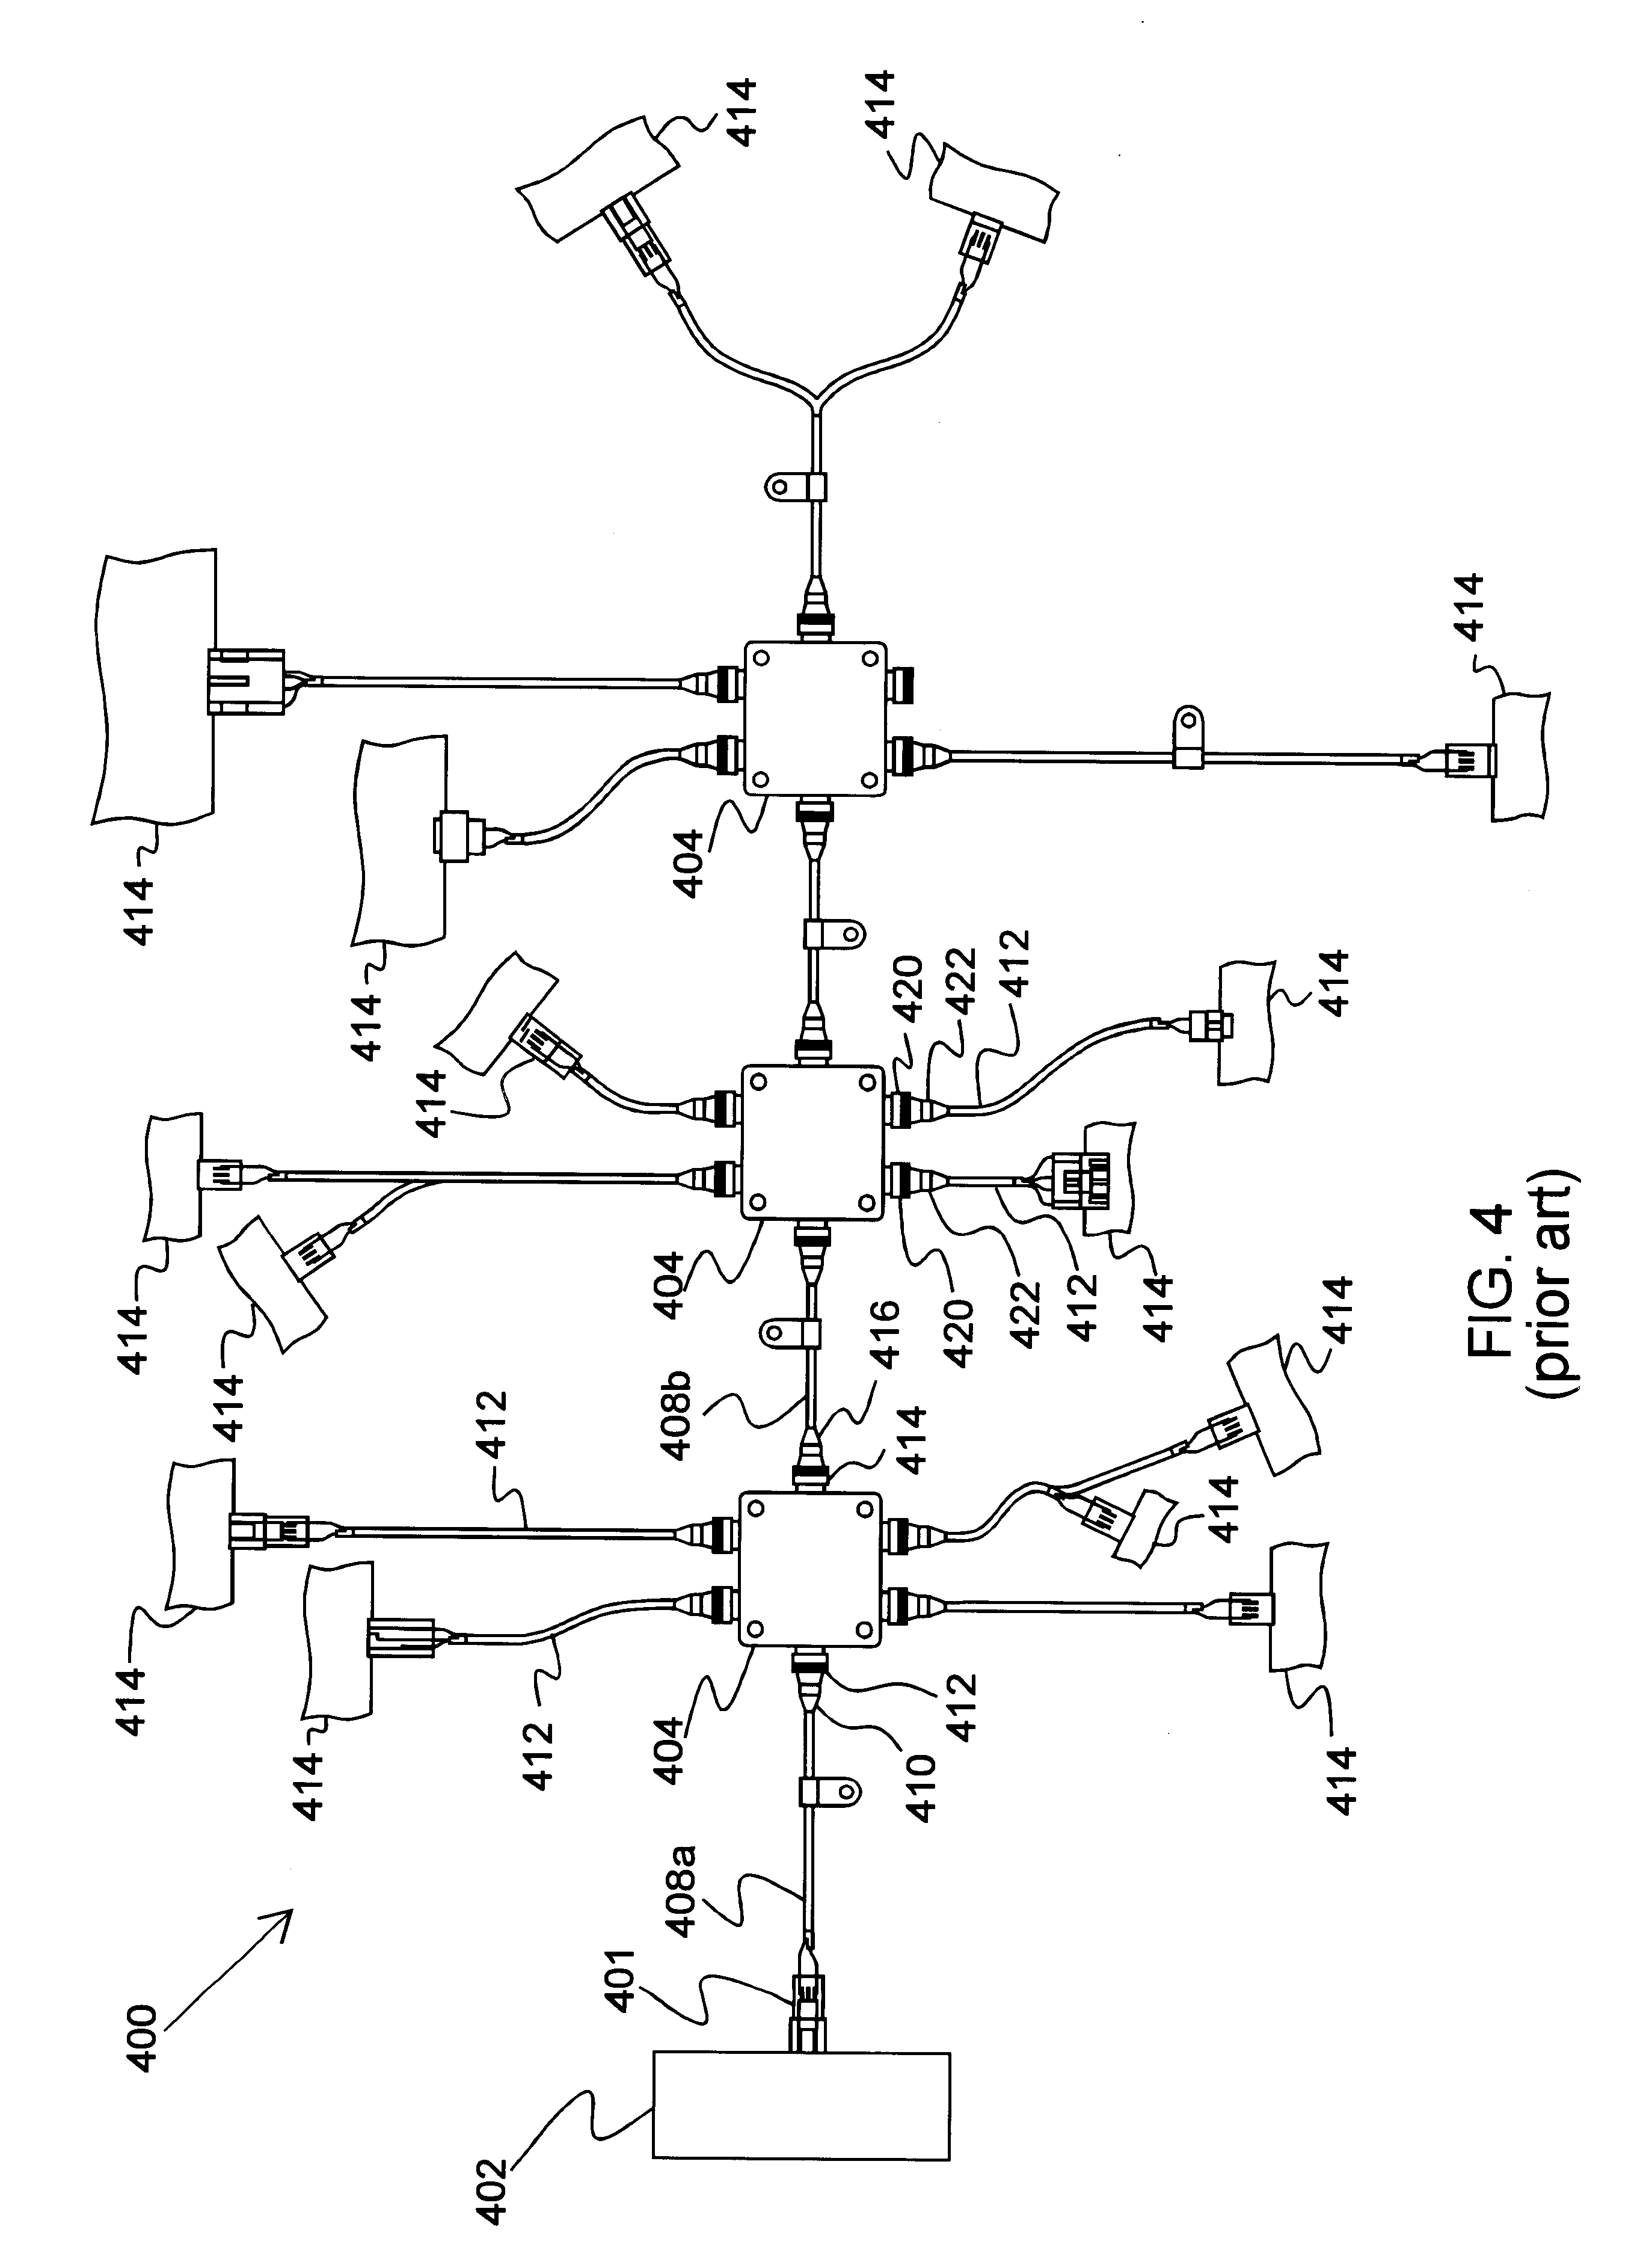 patent us6291770 wiring system and method therefor patenten Electrical Connectors patent drawing